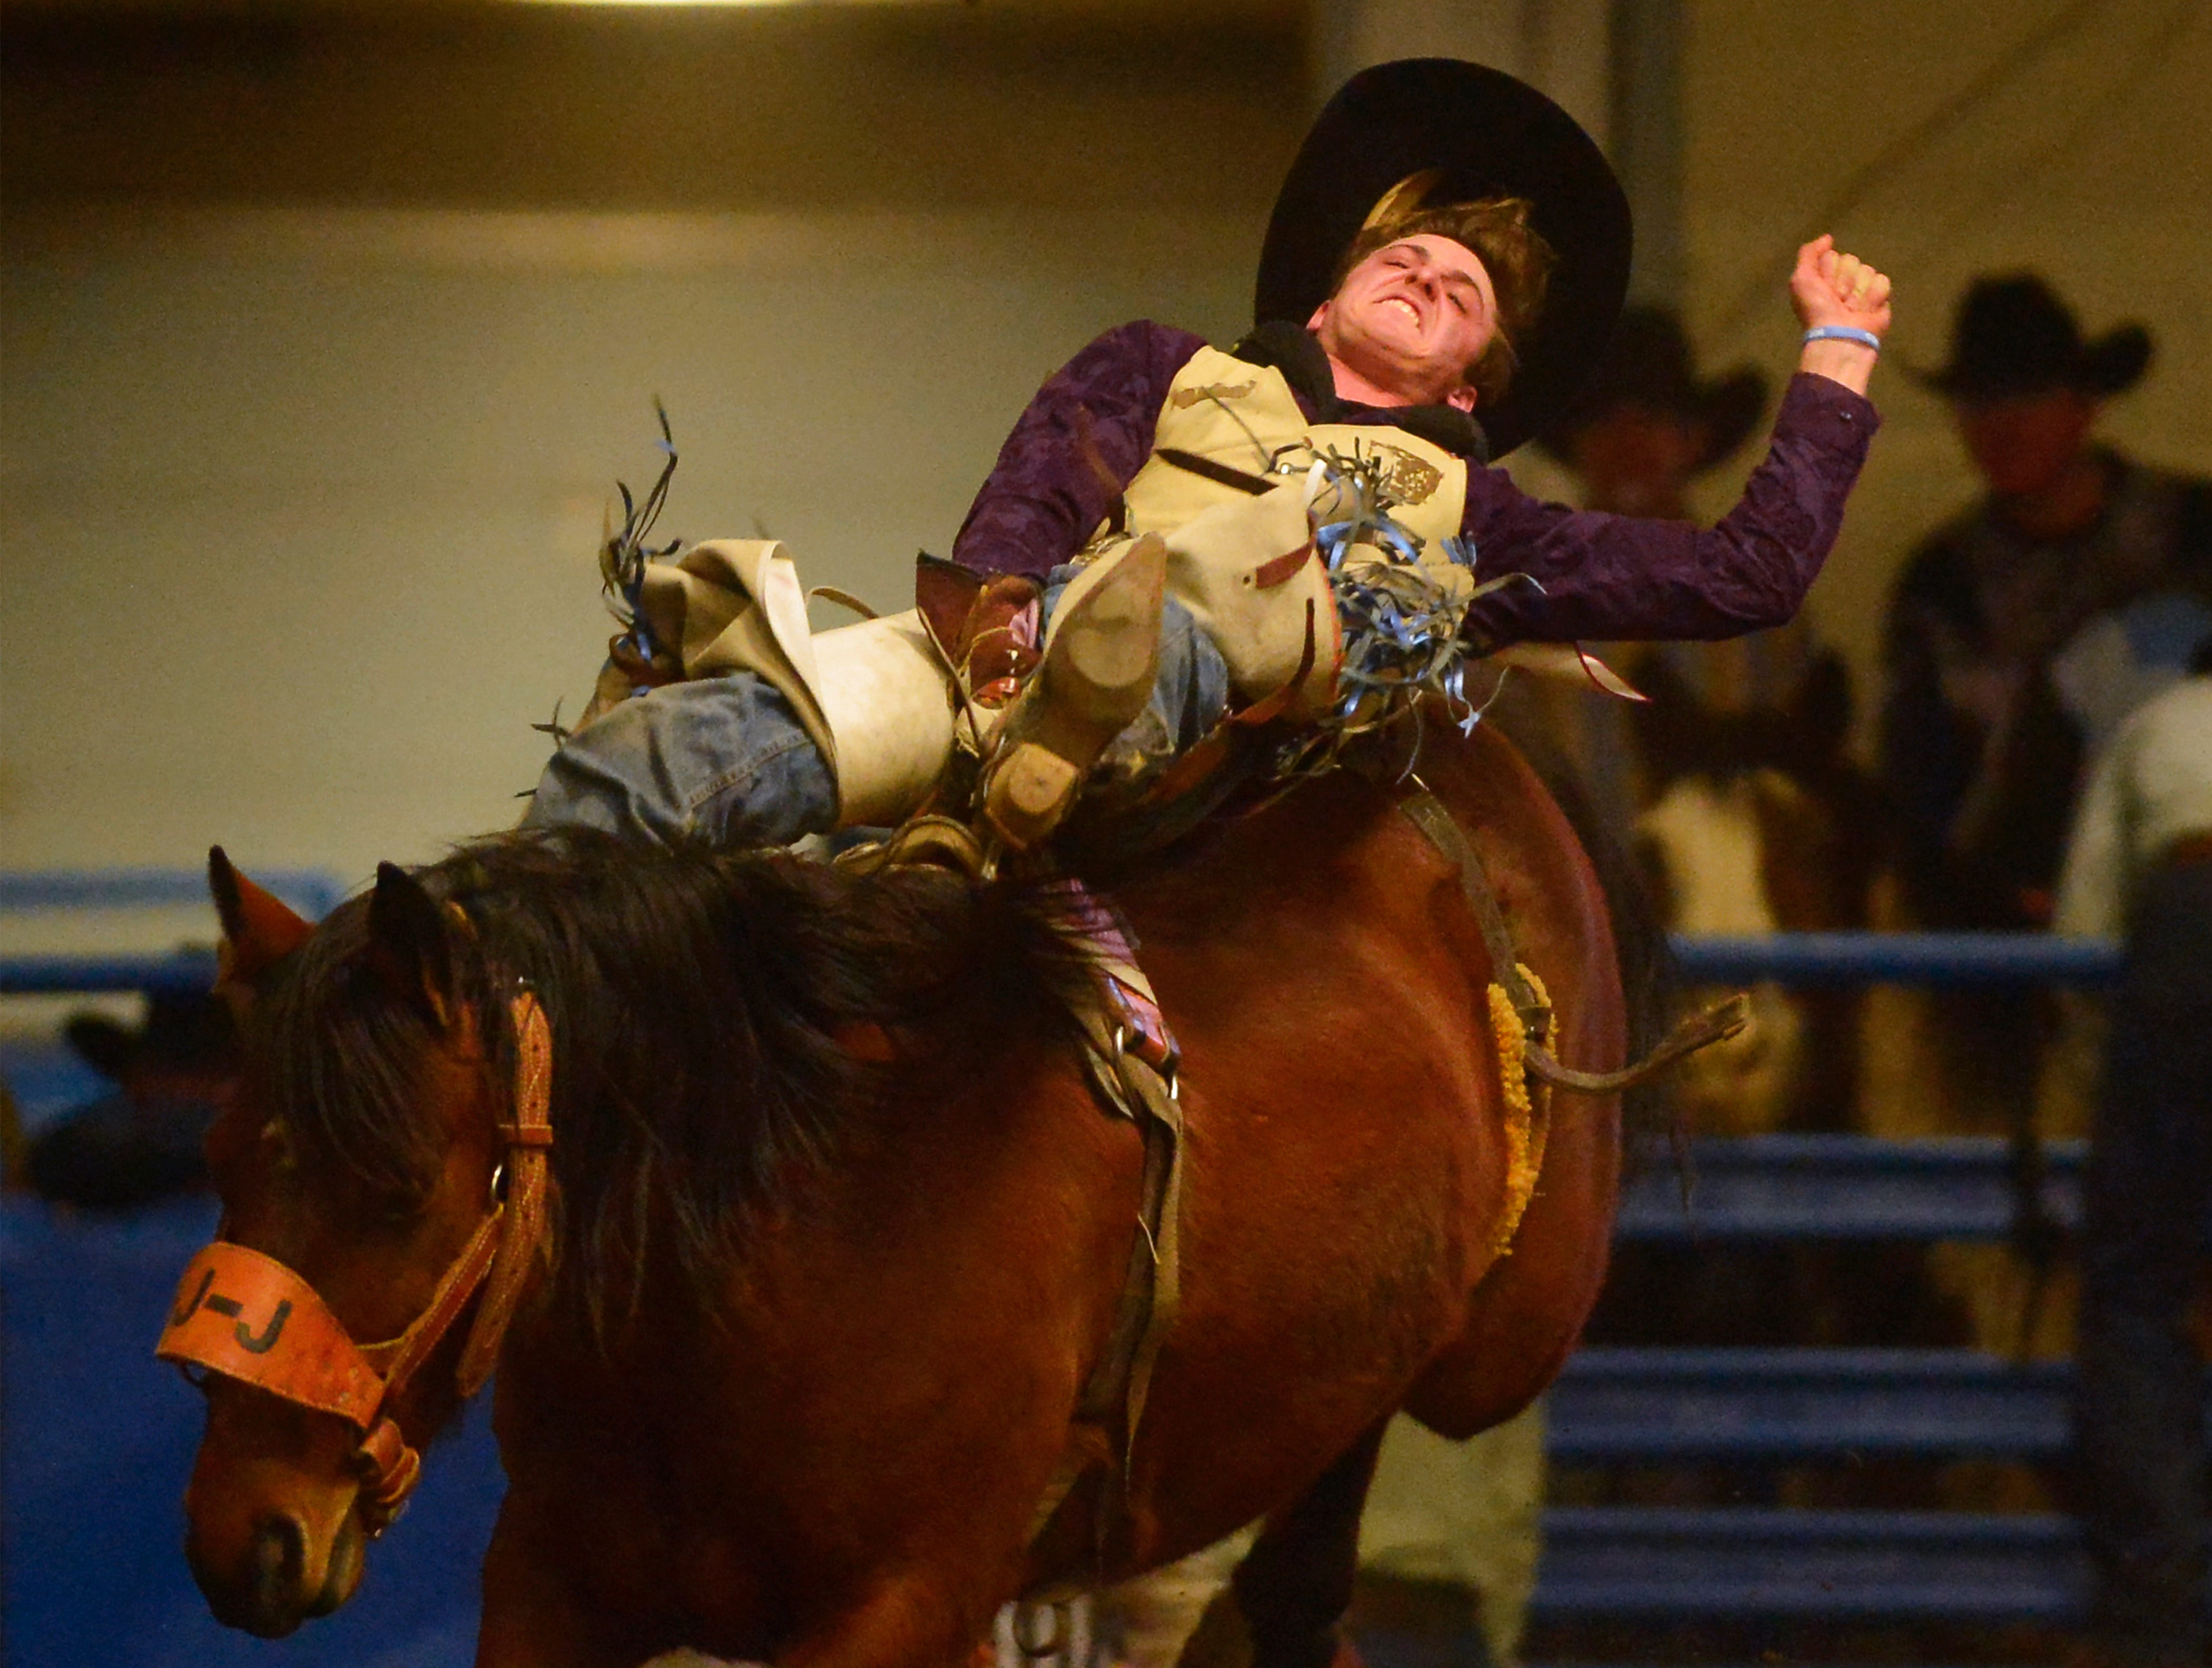 Shawn Perkins makes an 80 point ride in the bareback riding event during the Montana Pro Rodeo Circuit Finals in the Pacific Steel and Recycling Four Seasons Arena, Friday, January 11, 2019.